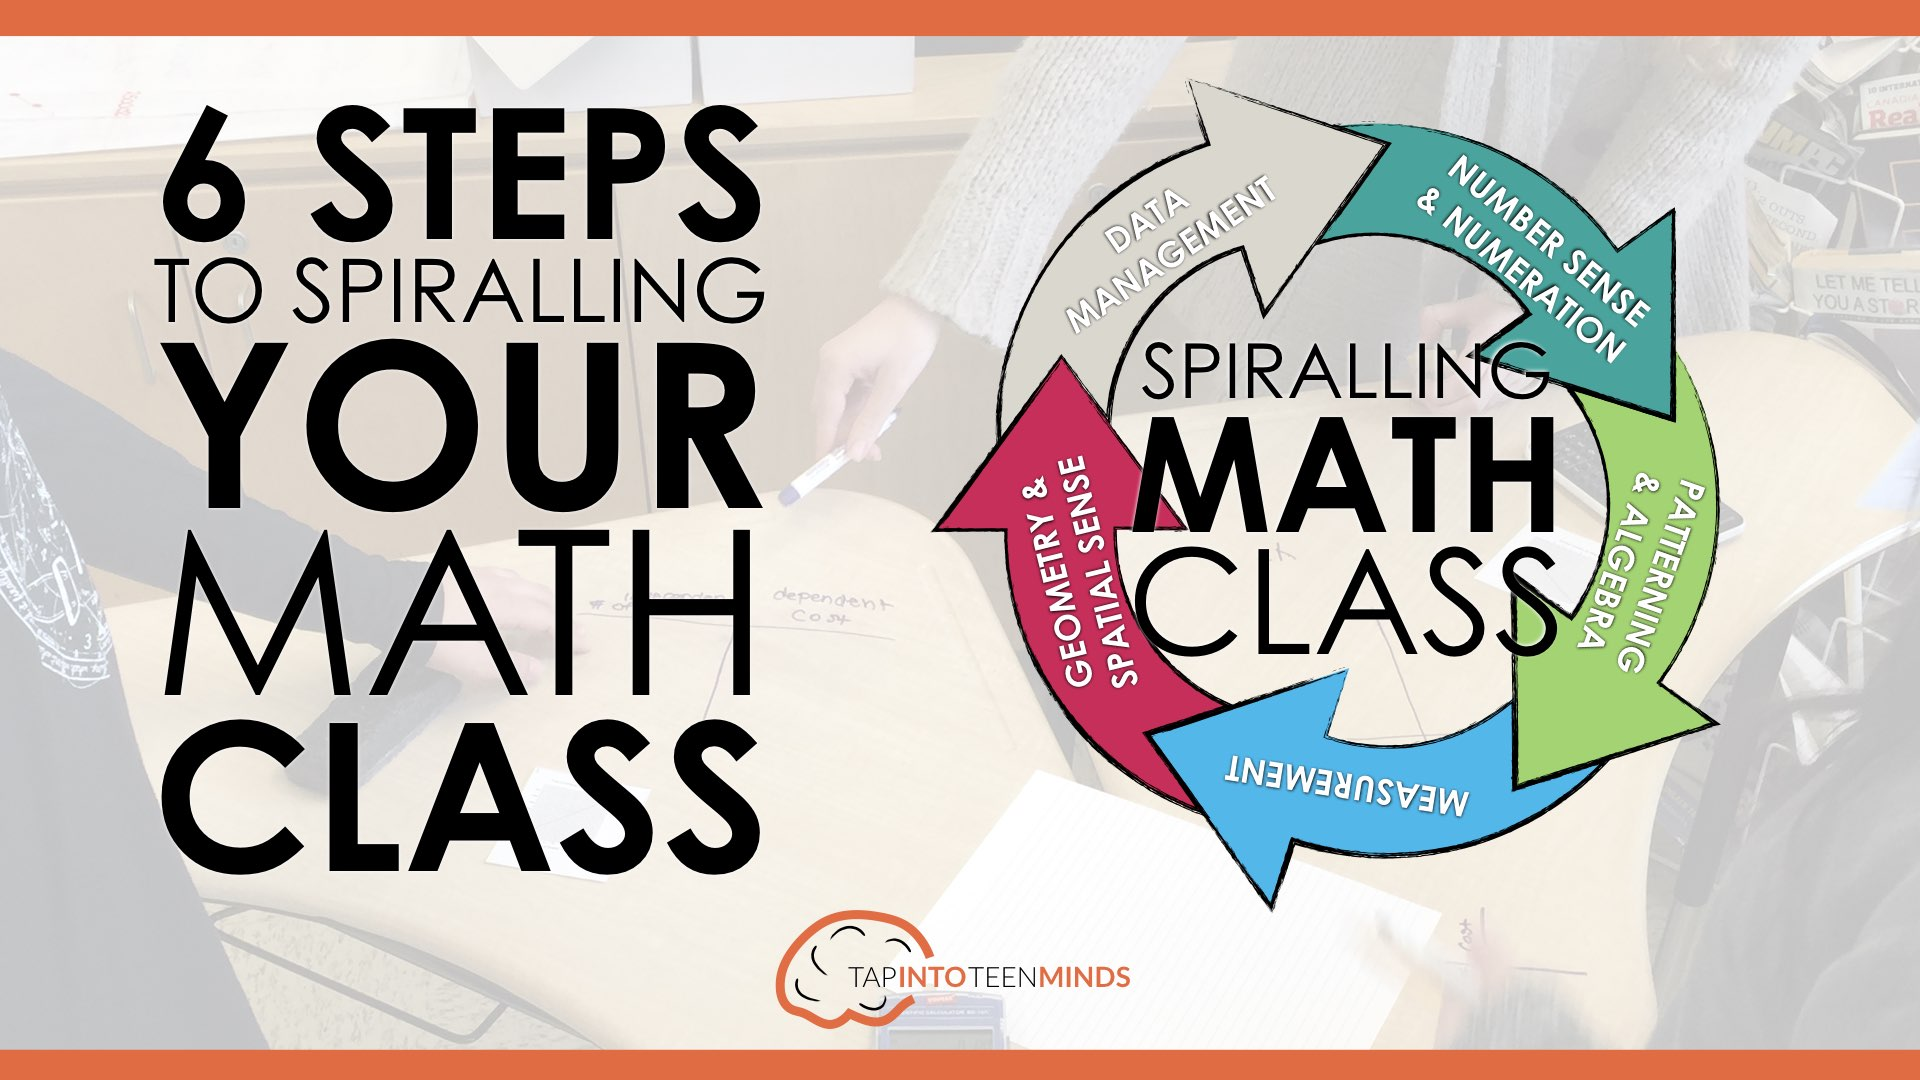 Spiralling Your Math Curriculum - 6 Steps to Spiralling Your Math Class